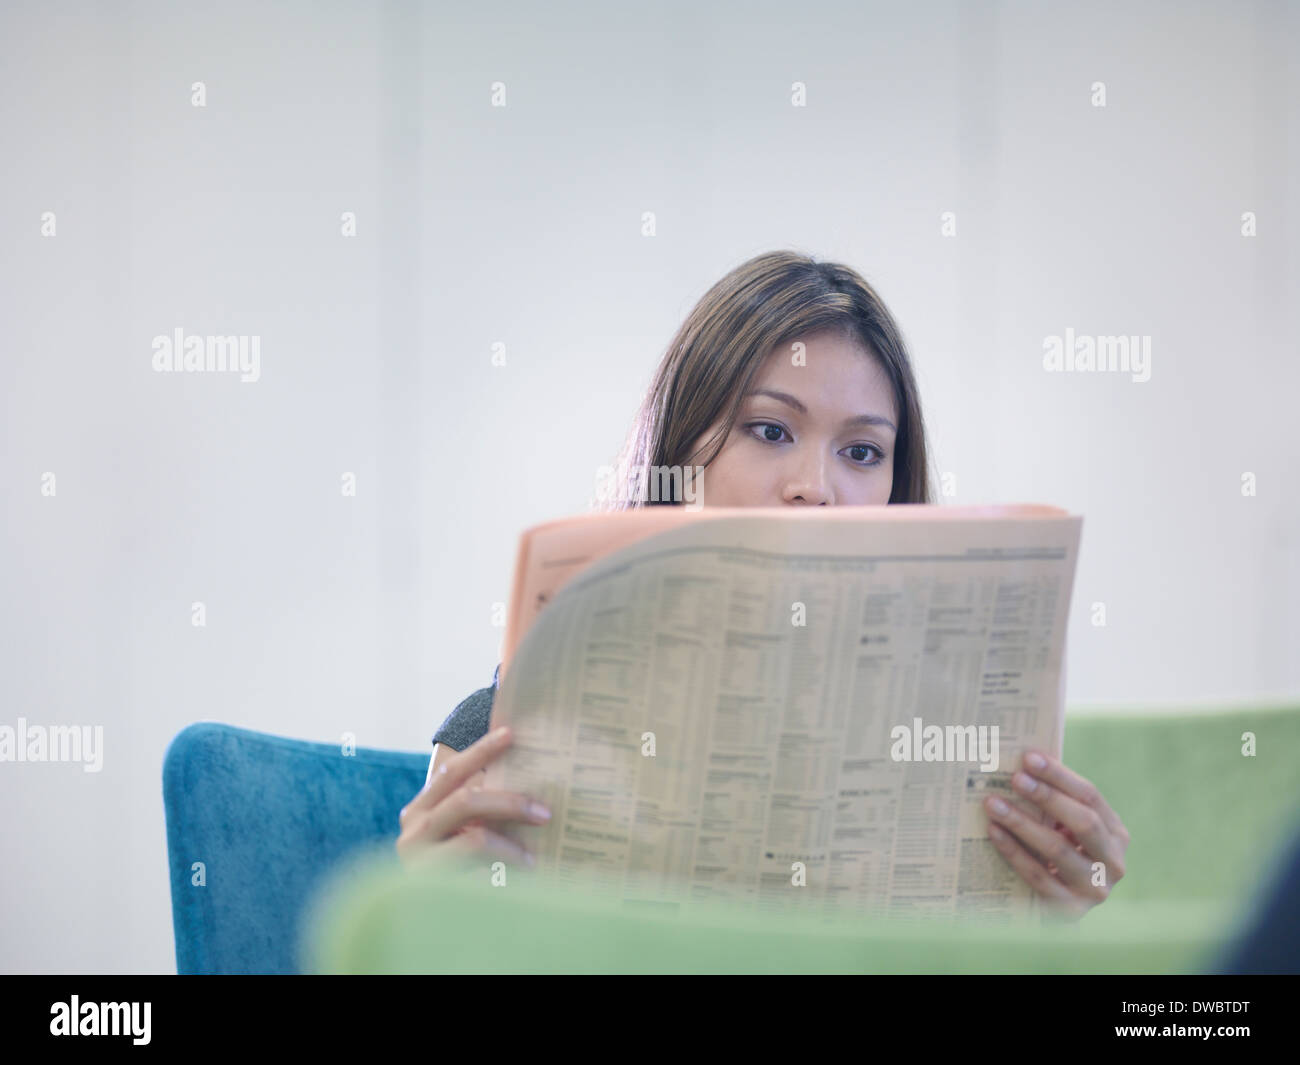 La Businesswoman reading newspaper Photo Stock